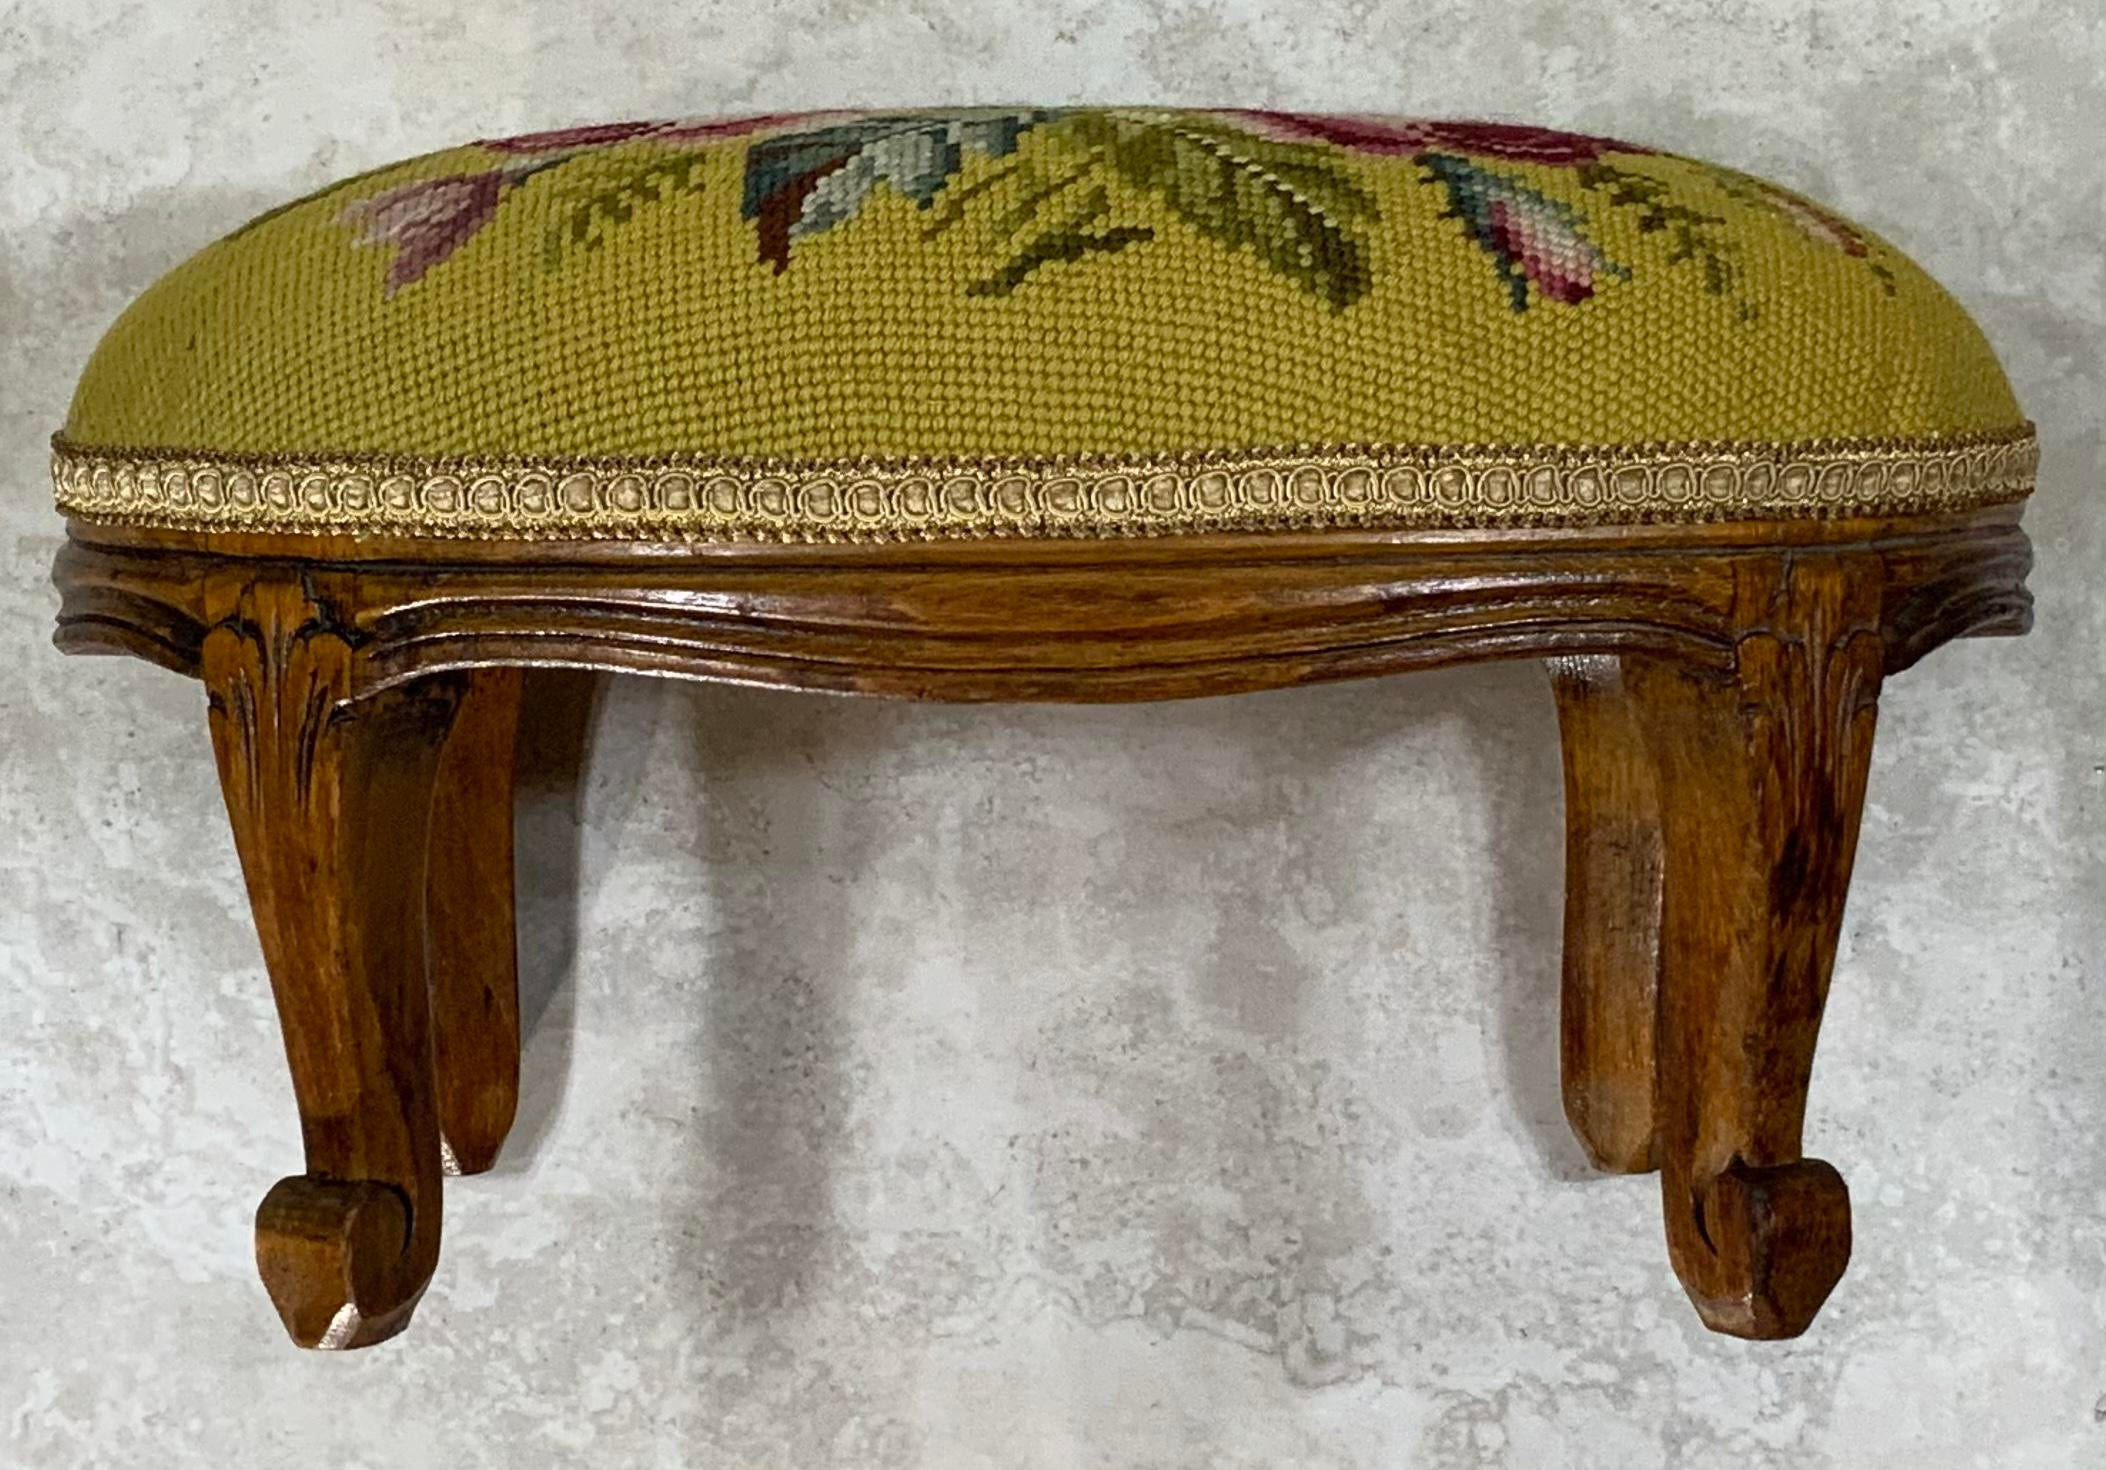 Antique Wooden Foot Stool Early 20th c.